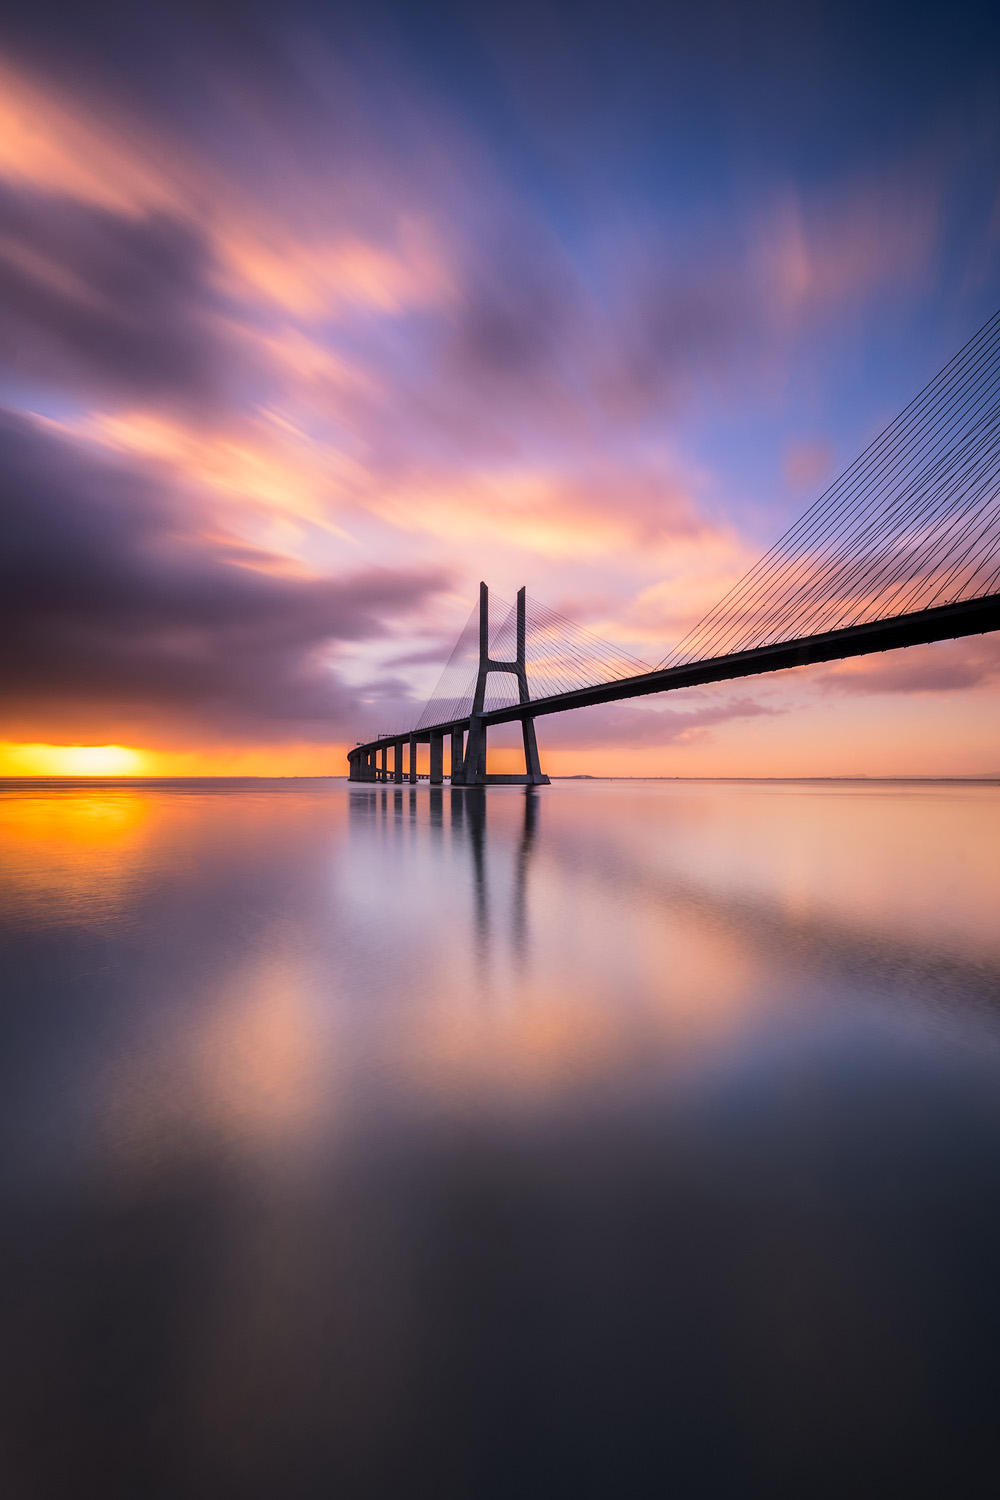 Vasco da Gama   Sunrise at Vasco da Gama bridge in Lisbon